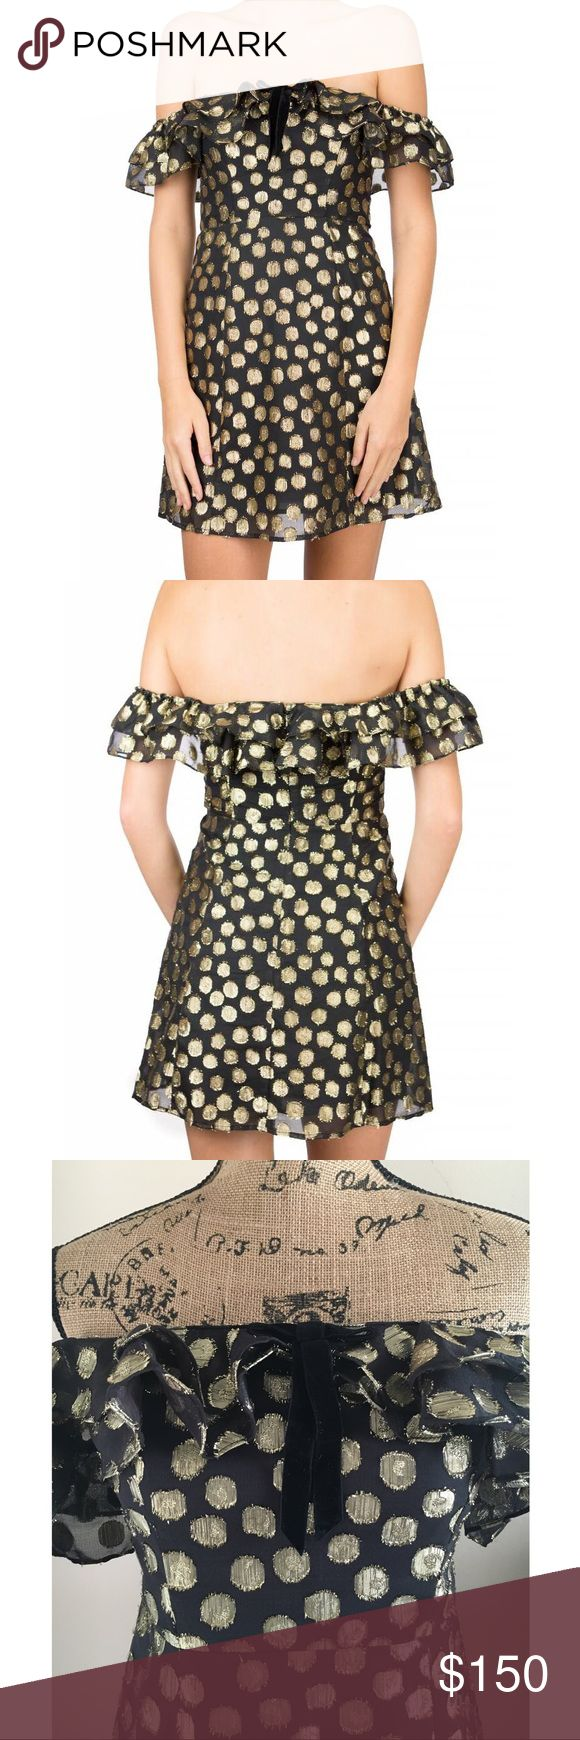 For Love & Lemons Lottie Ruffle Mini Dress Just in time for the holidays, the Lottie Ruffle Mini Dress gives your little black dress a festive update. With a gold dot metallic burnout and ruffled sleeves that carelessly fall to graze your shoulders, this gorgeous mini is complete with a velvet ribbon and a fit and flare finish  ✨Stacked Off Shoulder Ruffles ✨Fixed Velvet Ribbon at Neckline ✨Fit and Flare ✨Invisible Zipper ✨Lined For Love And Lemons Dresses Mini